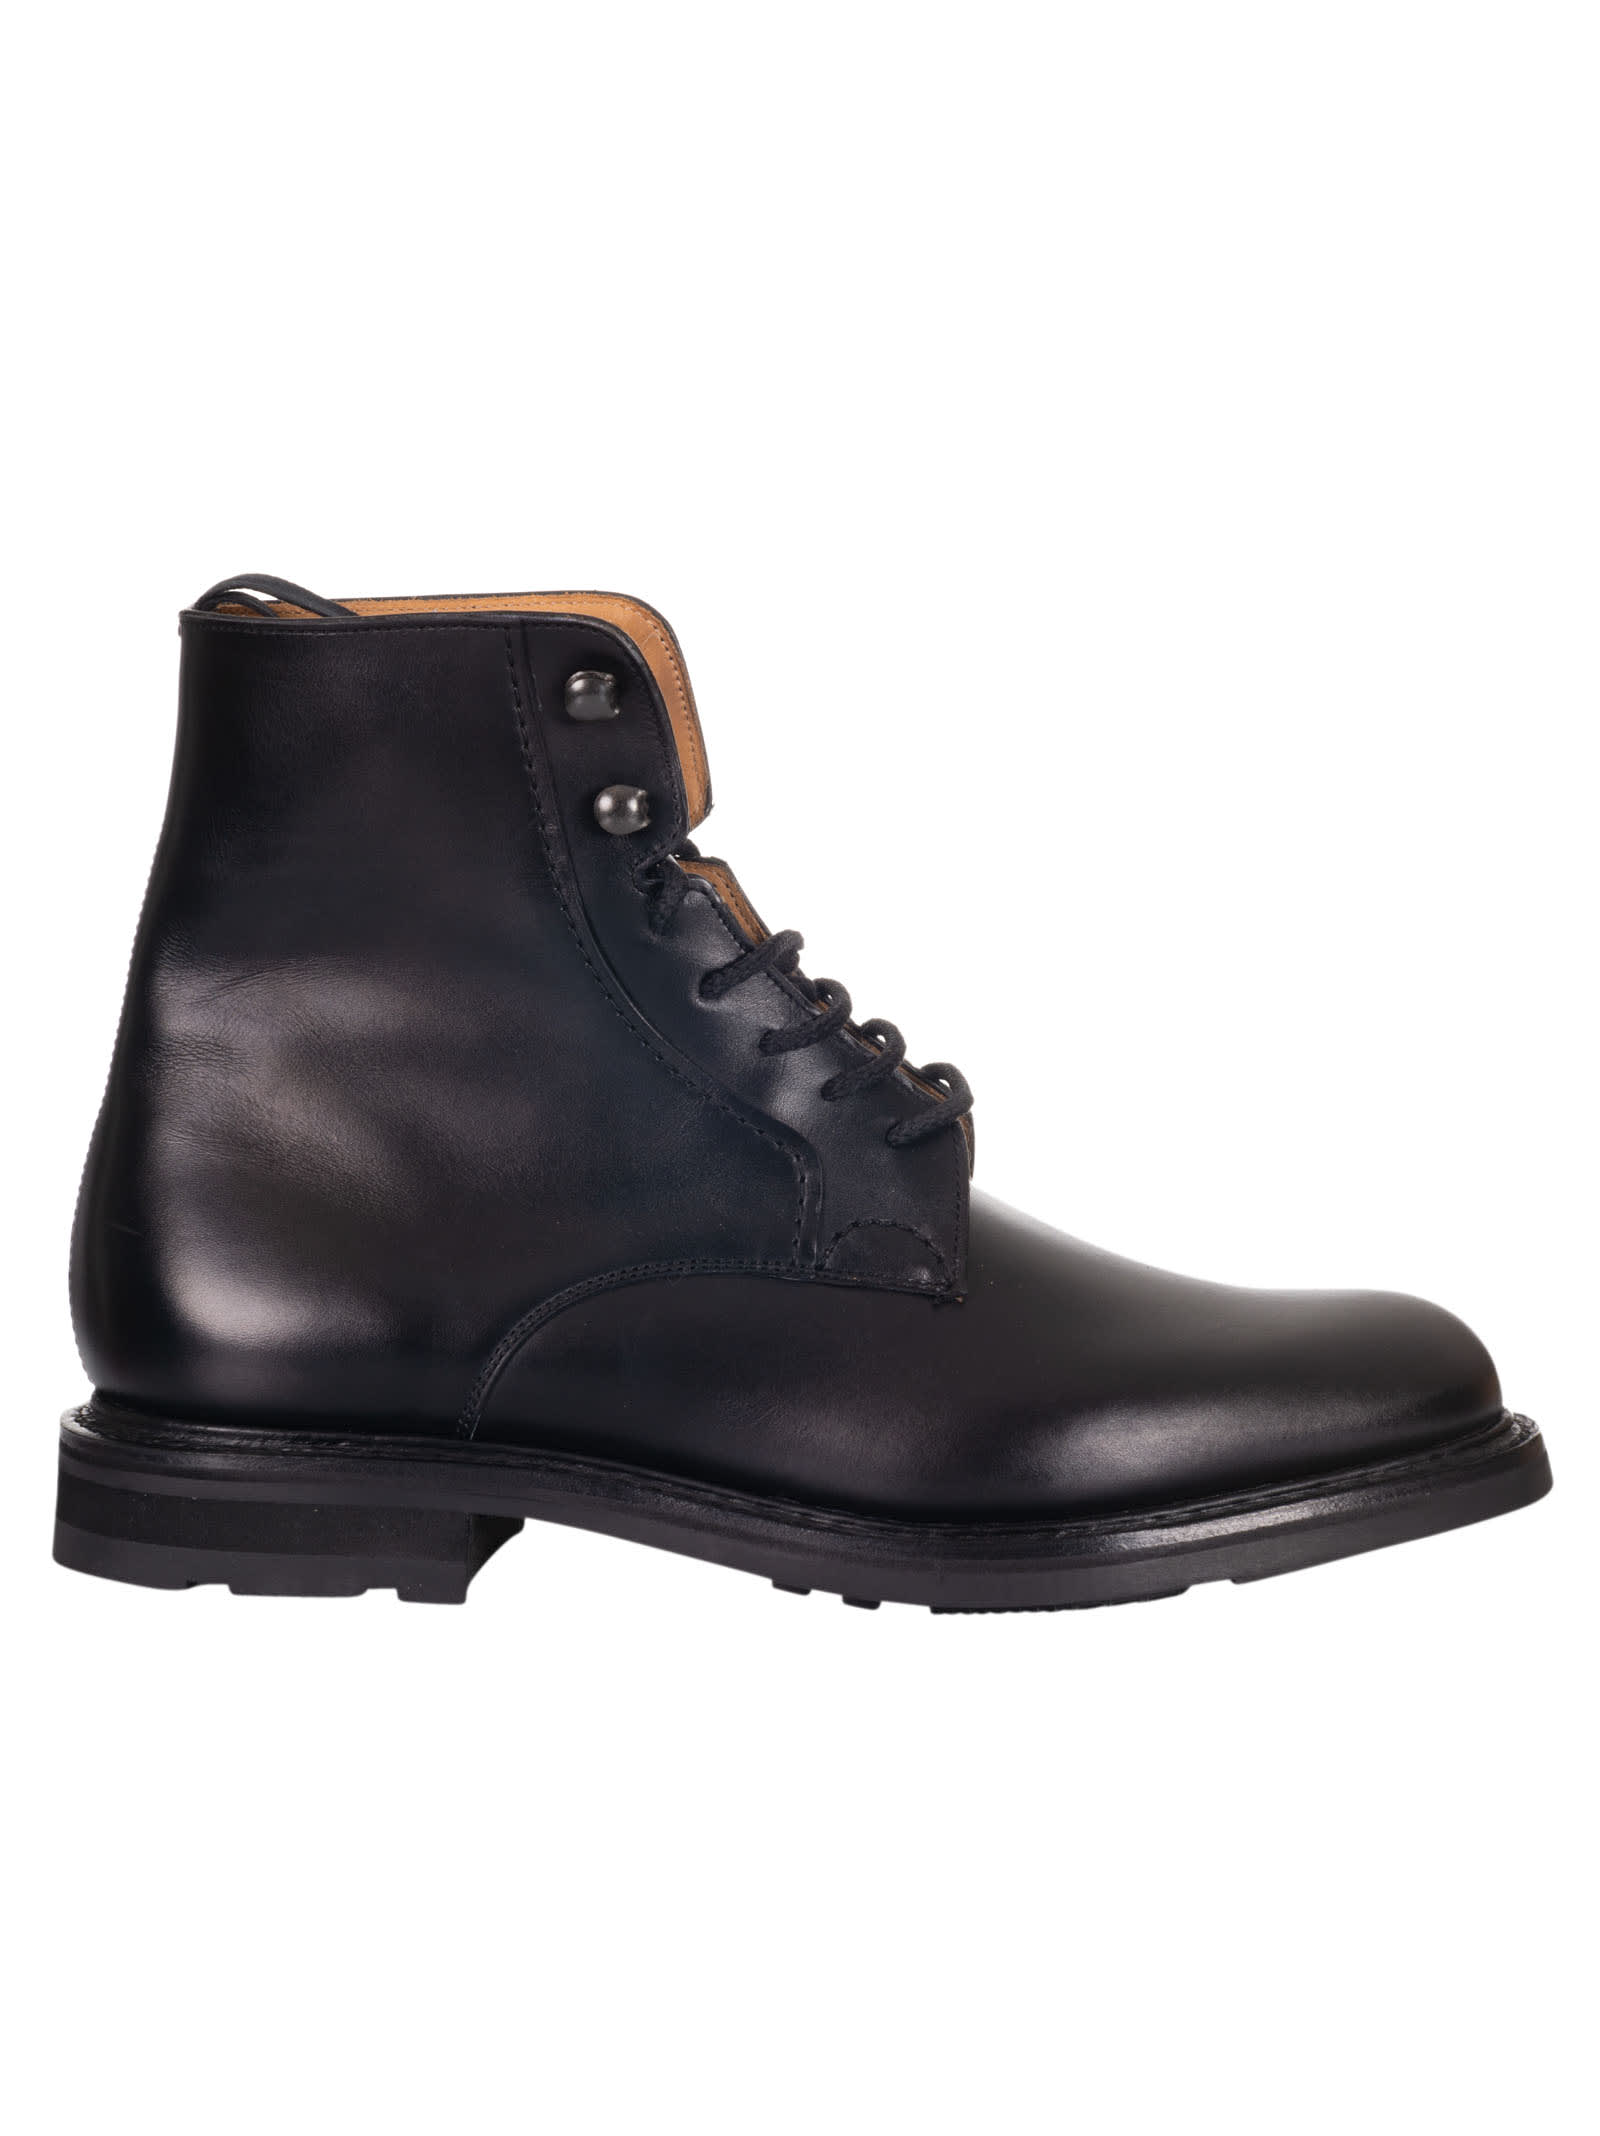 Churchs Classic Lace-up Boots